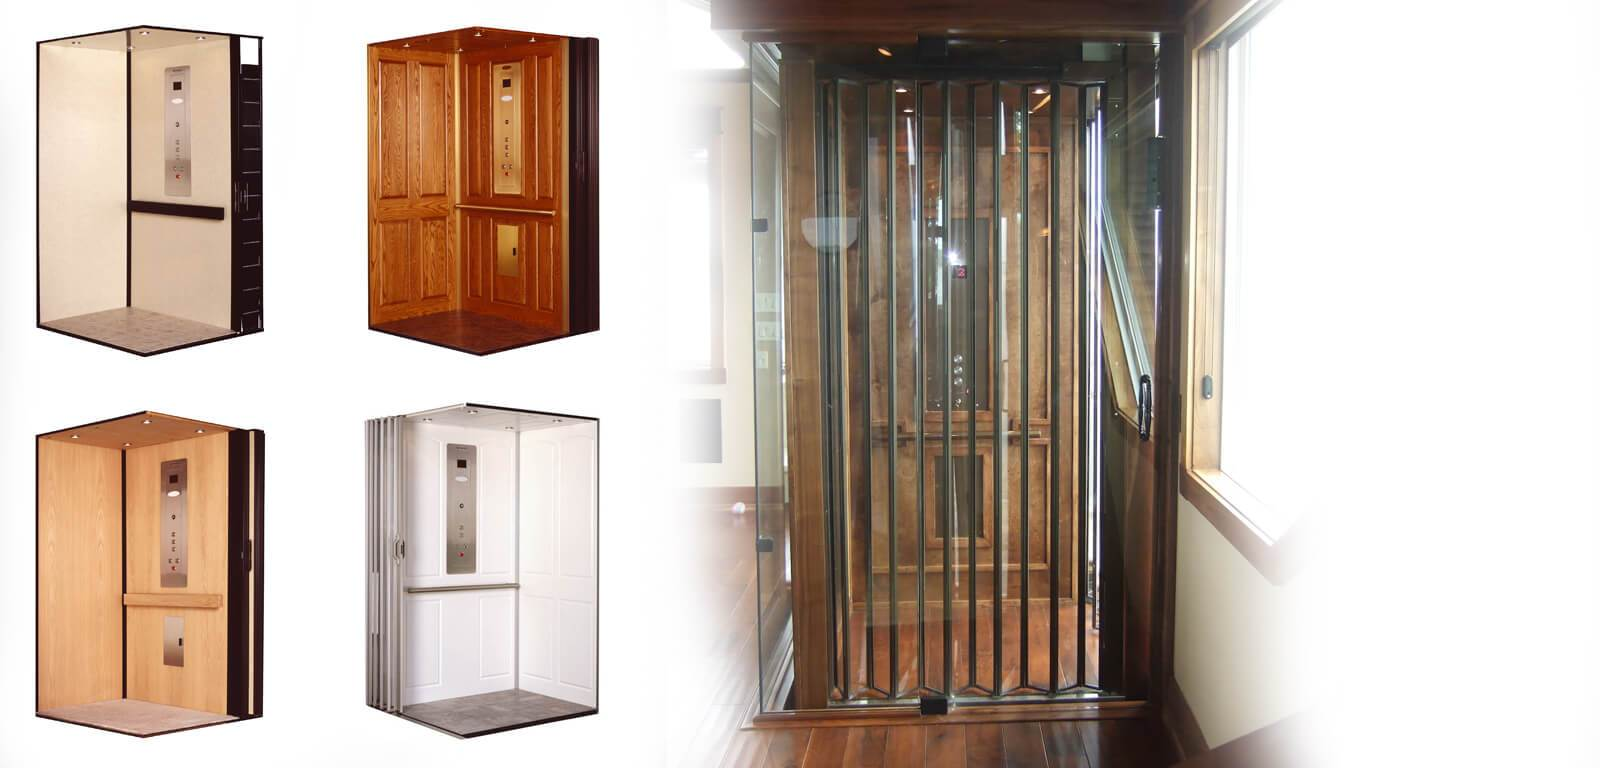 Remarkable home elevator design images ideas house for Elevator in house cost